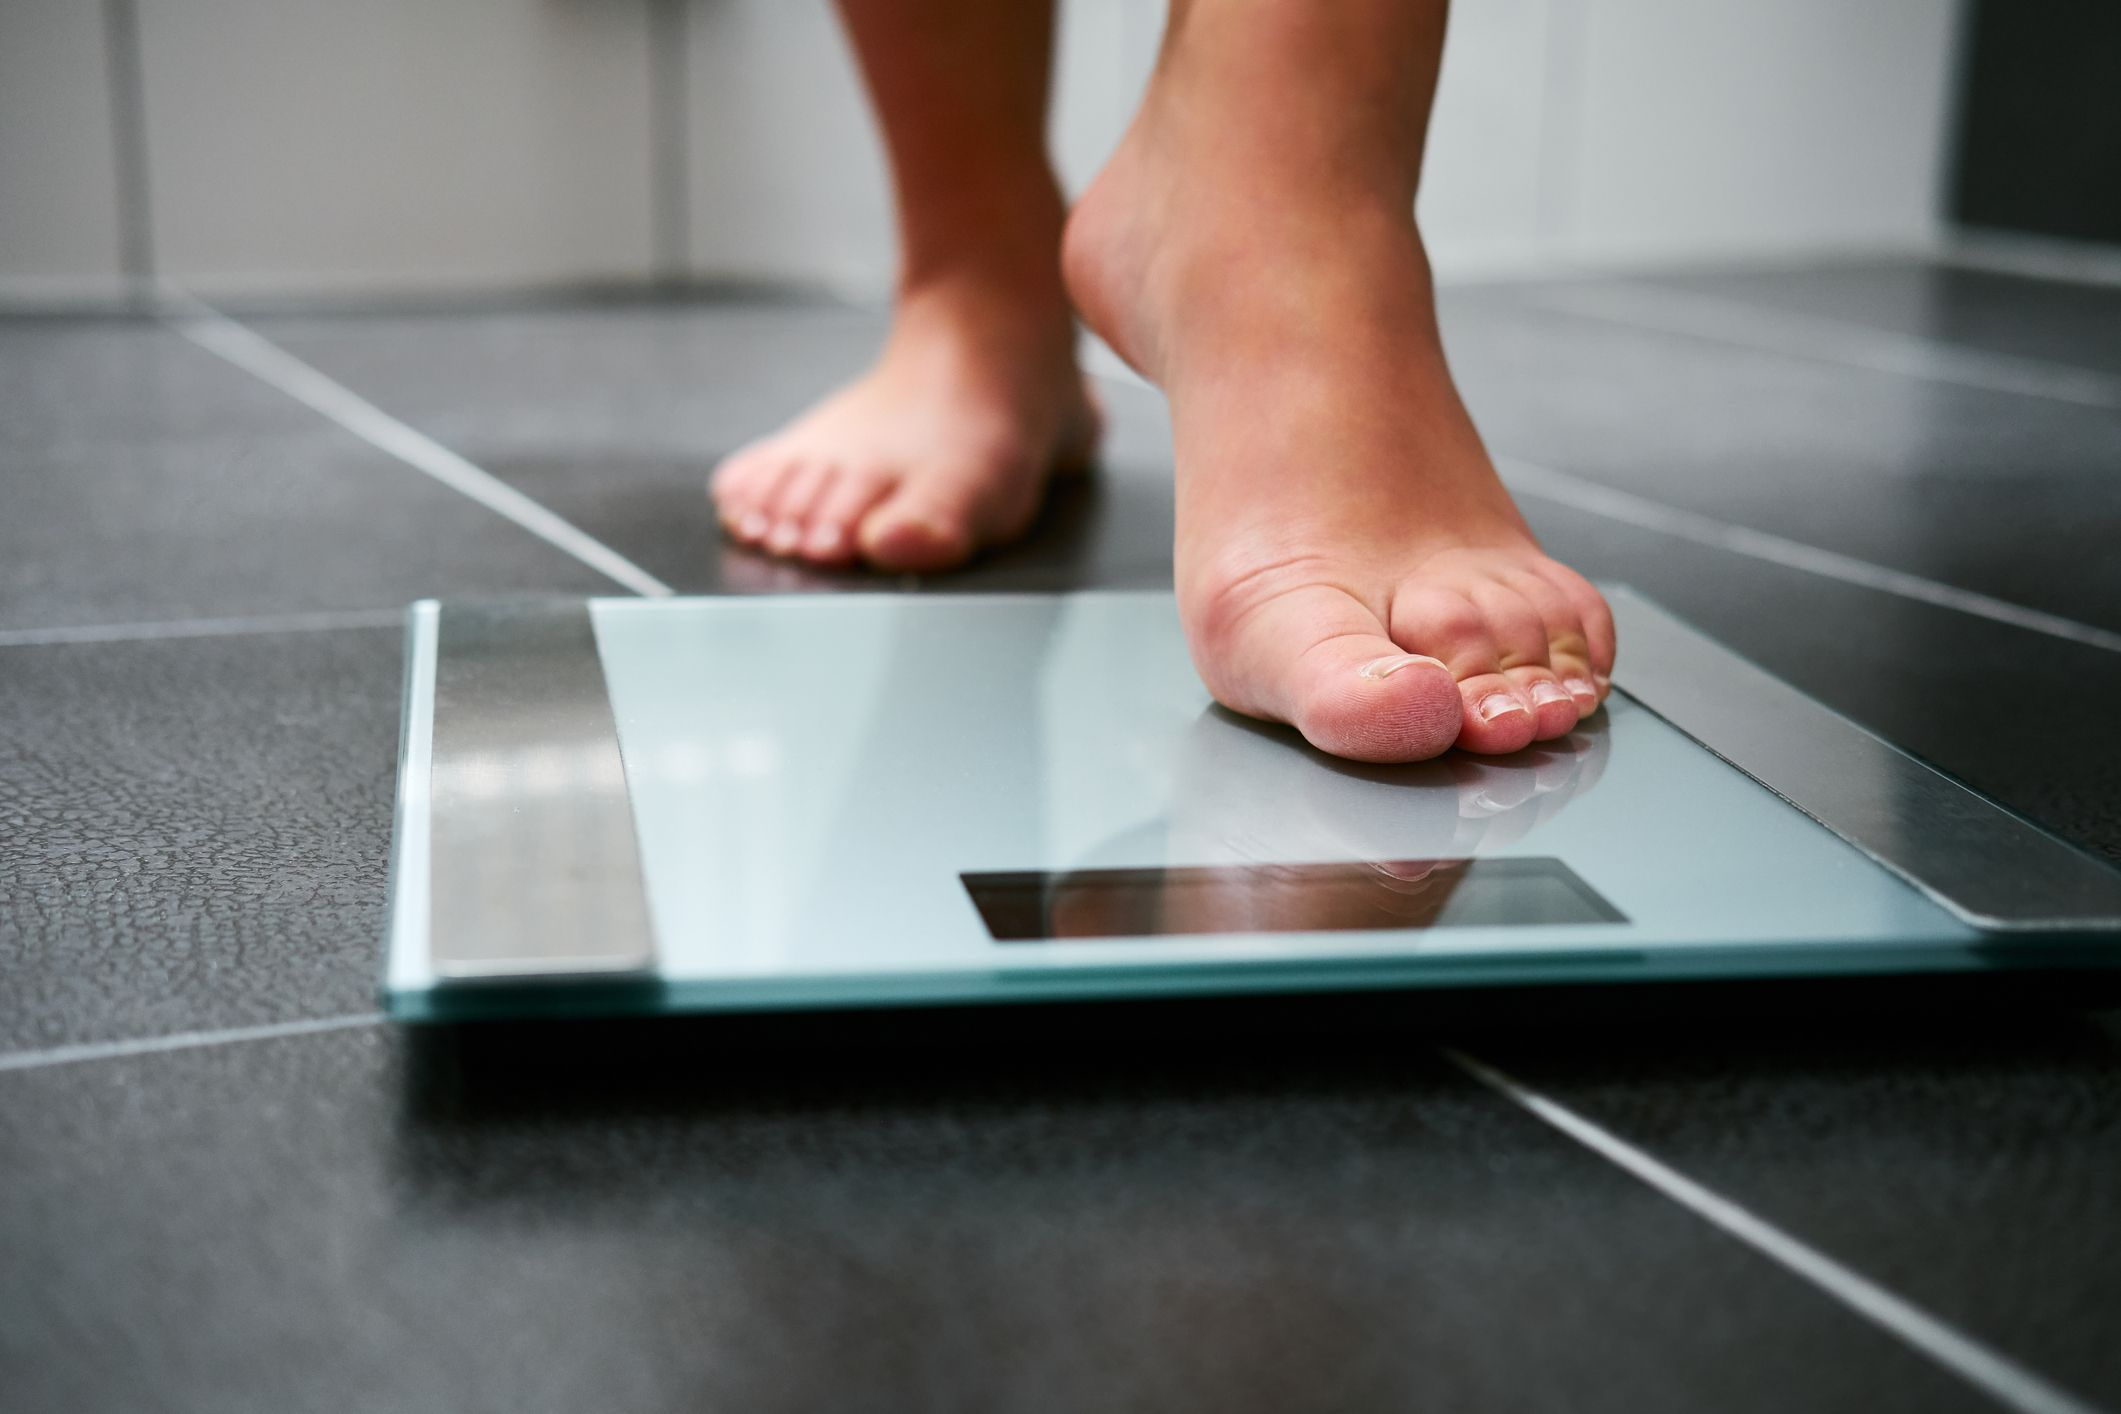 Bare-foot woman weighing herself